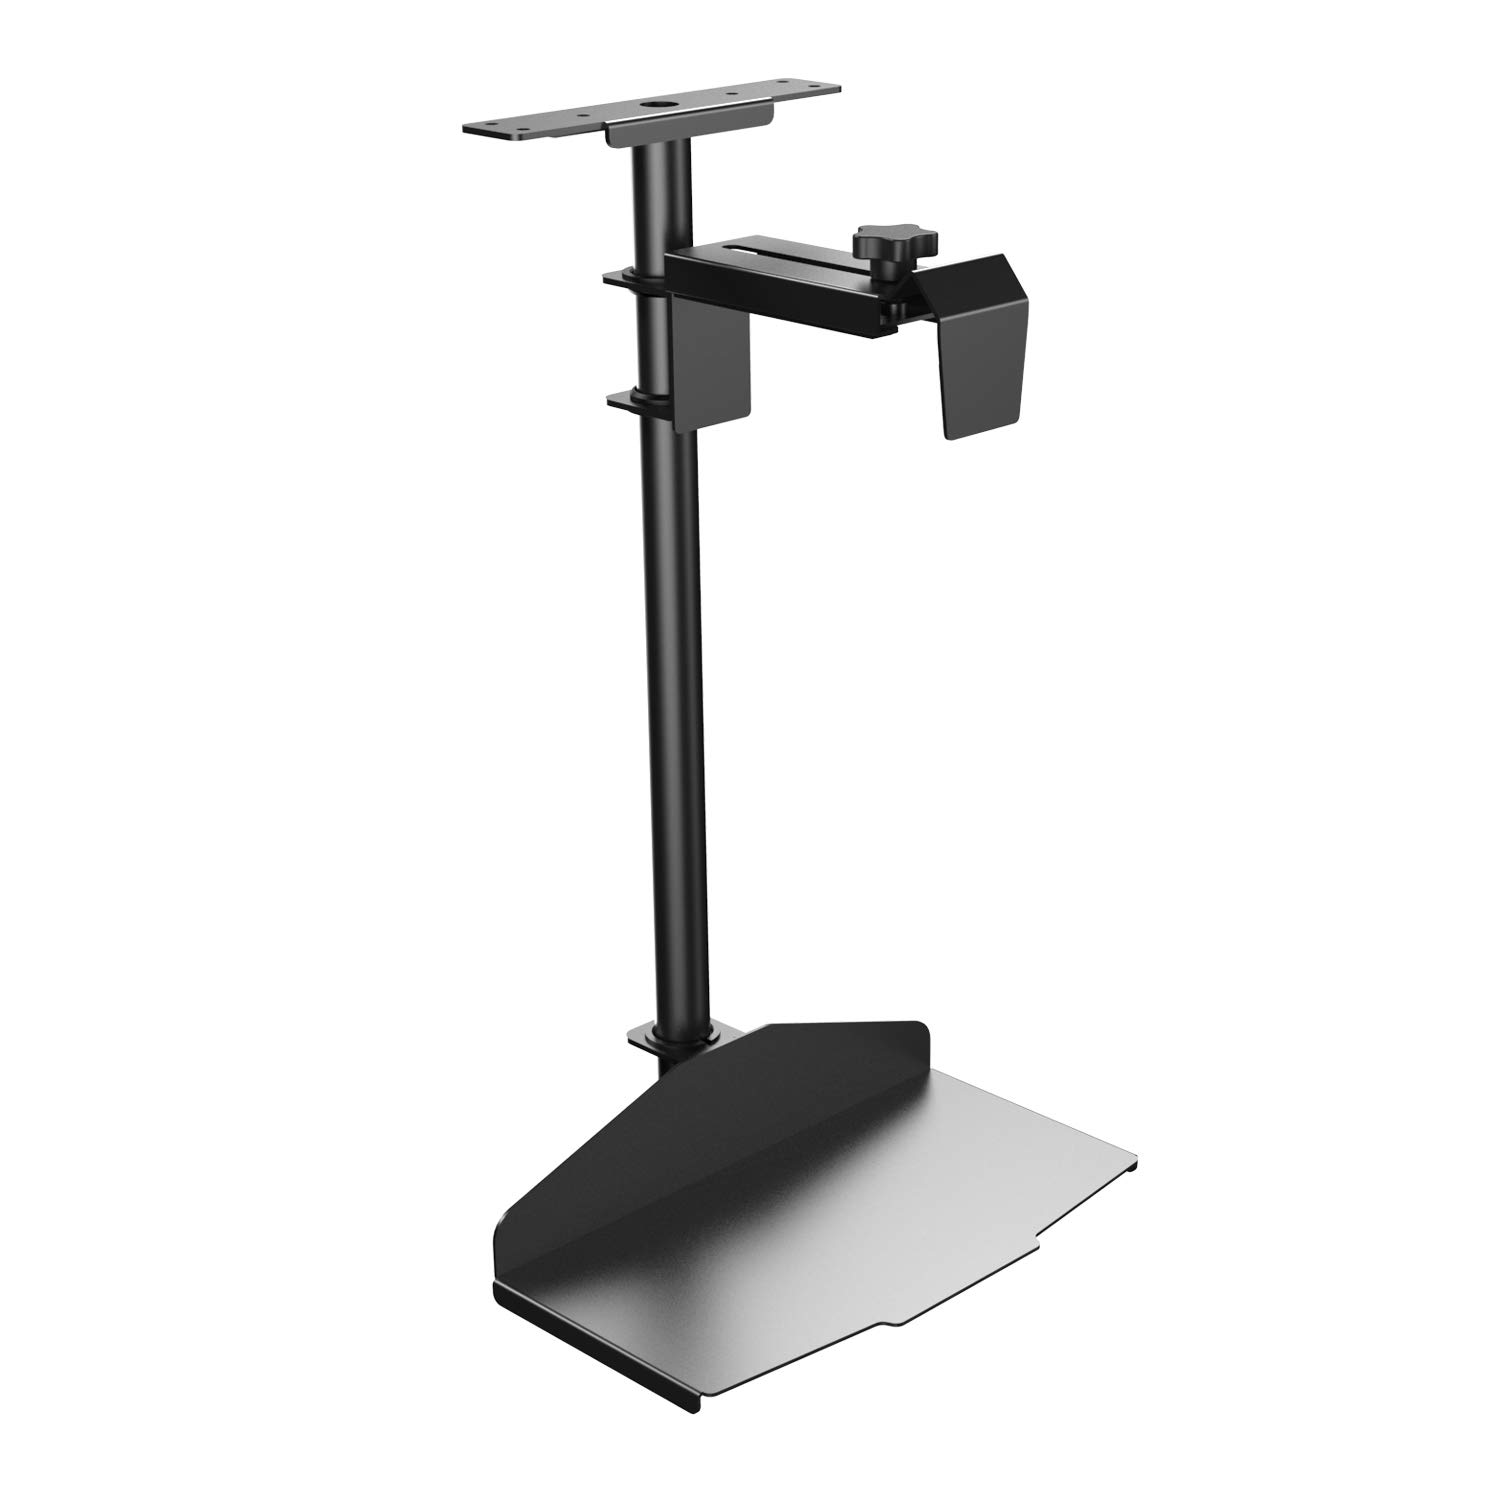 Eureka 360 Degree Rotating CPU Hanger-Height & Width Adjustable Fit for Gaming and Office - Black